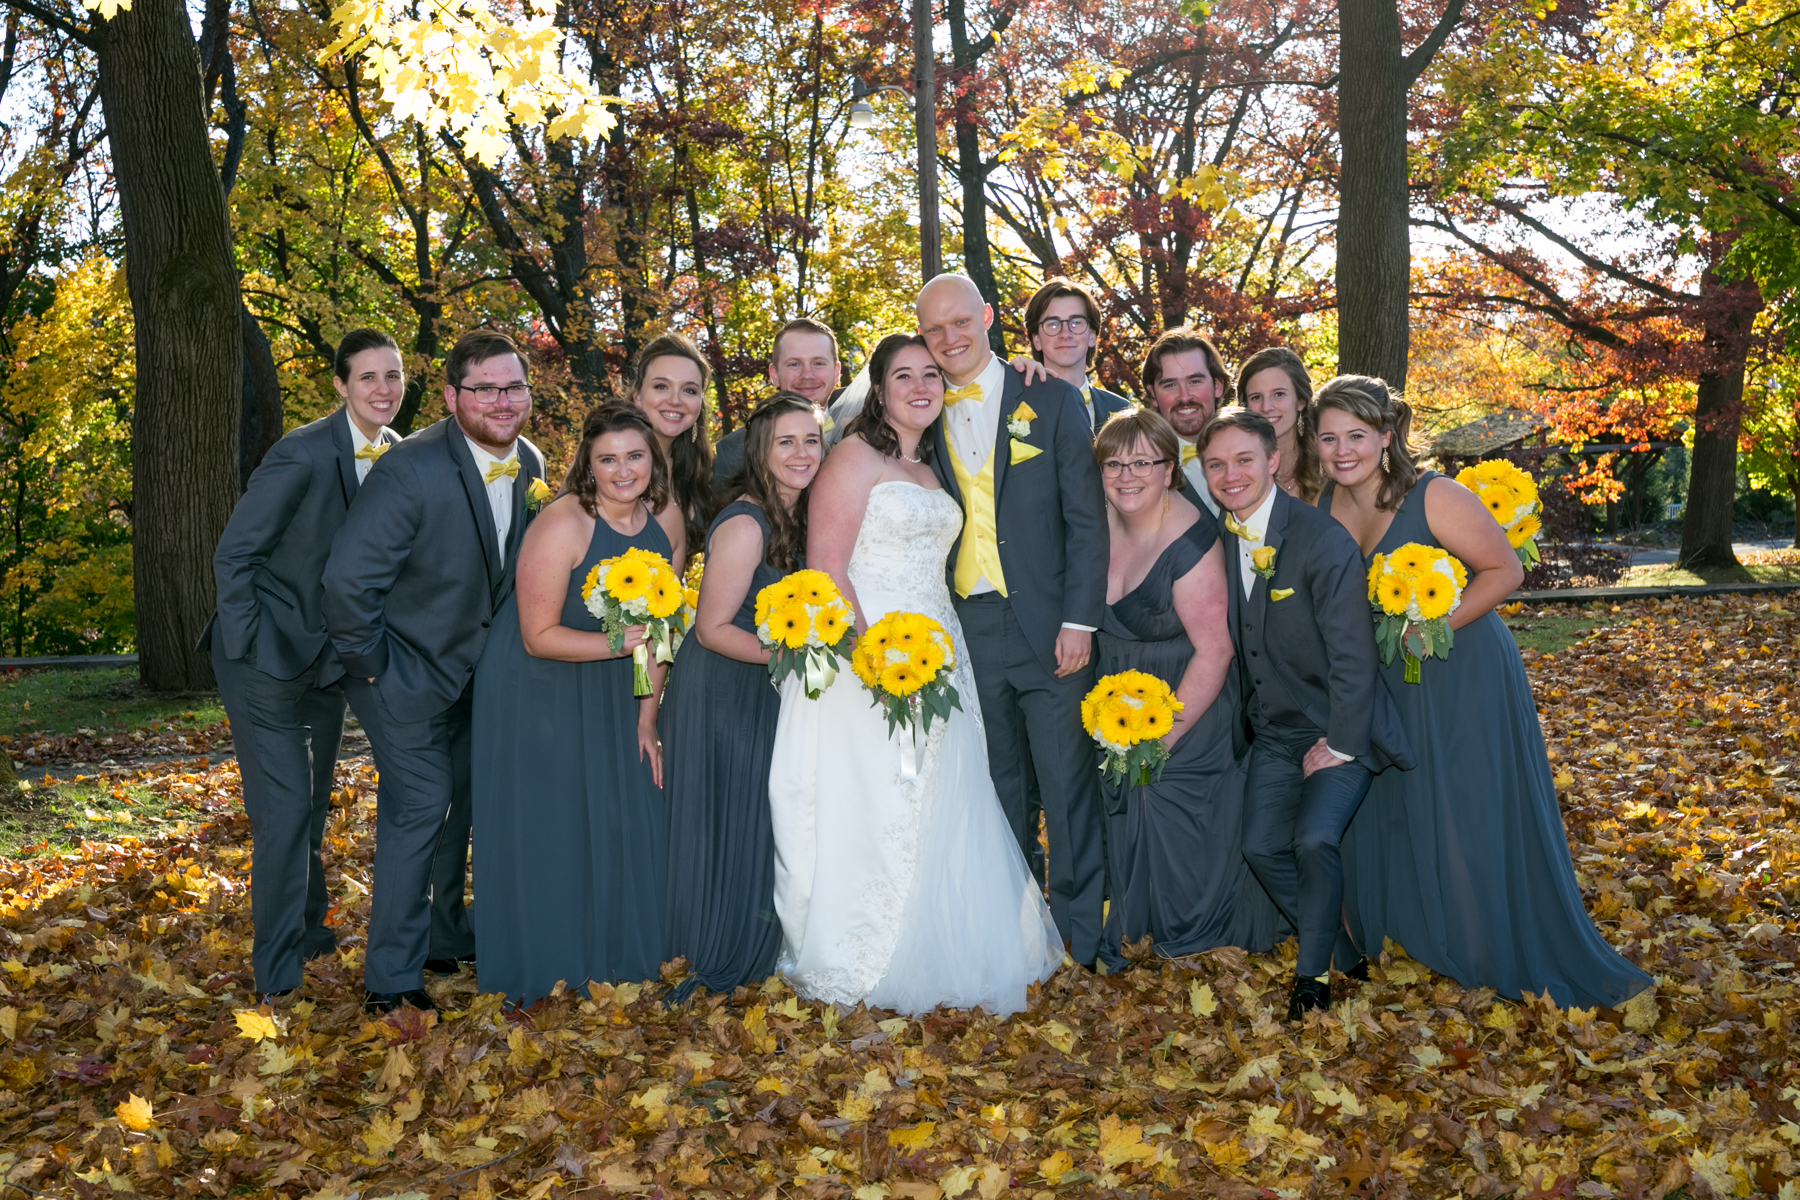 Mary & David – Scranton, PA